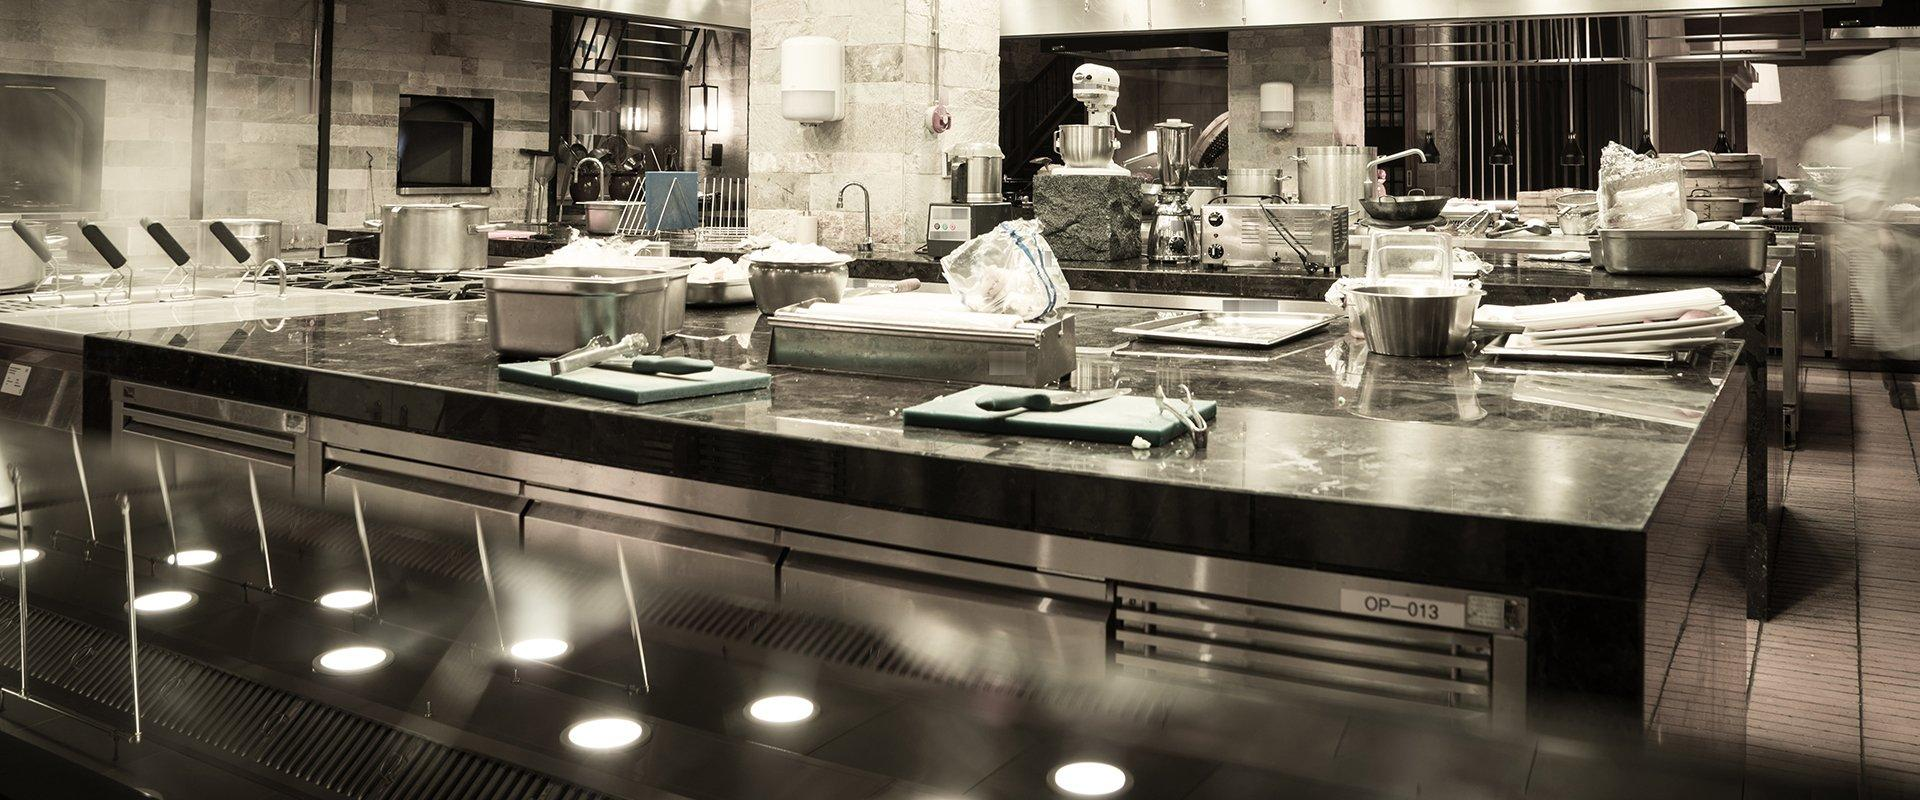 interior of a commercial kitchen